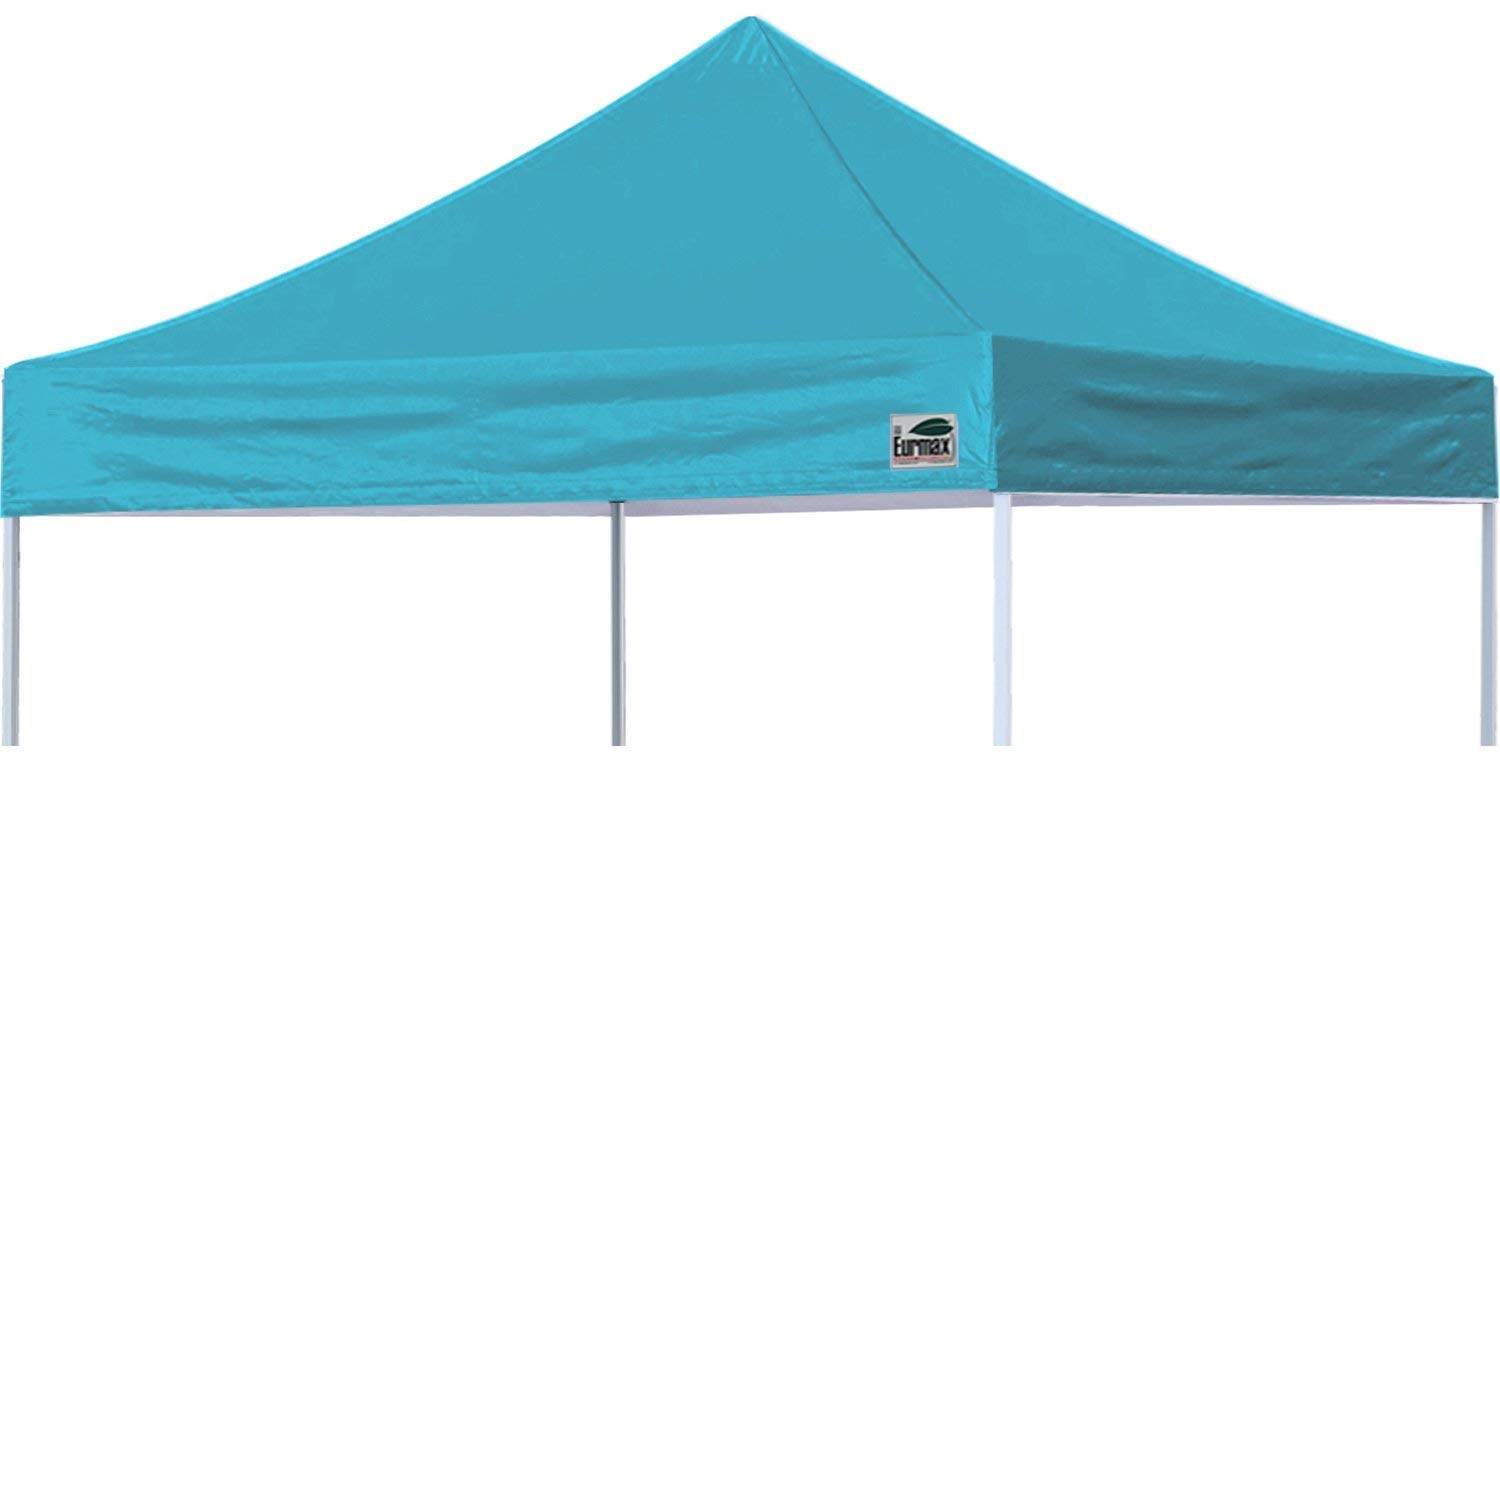 Eurmax New Pop up 10x10 Replacement Instant Ez Canopy Top Cover Choose 15 Colors (Turquoise)